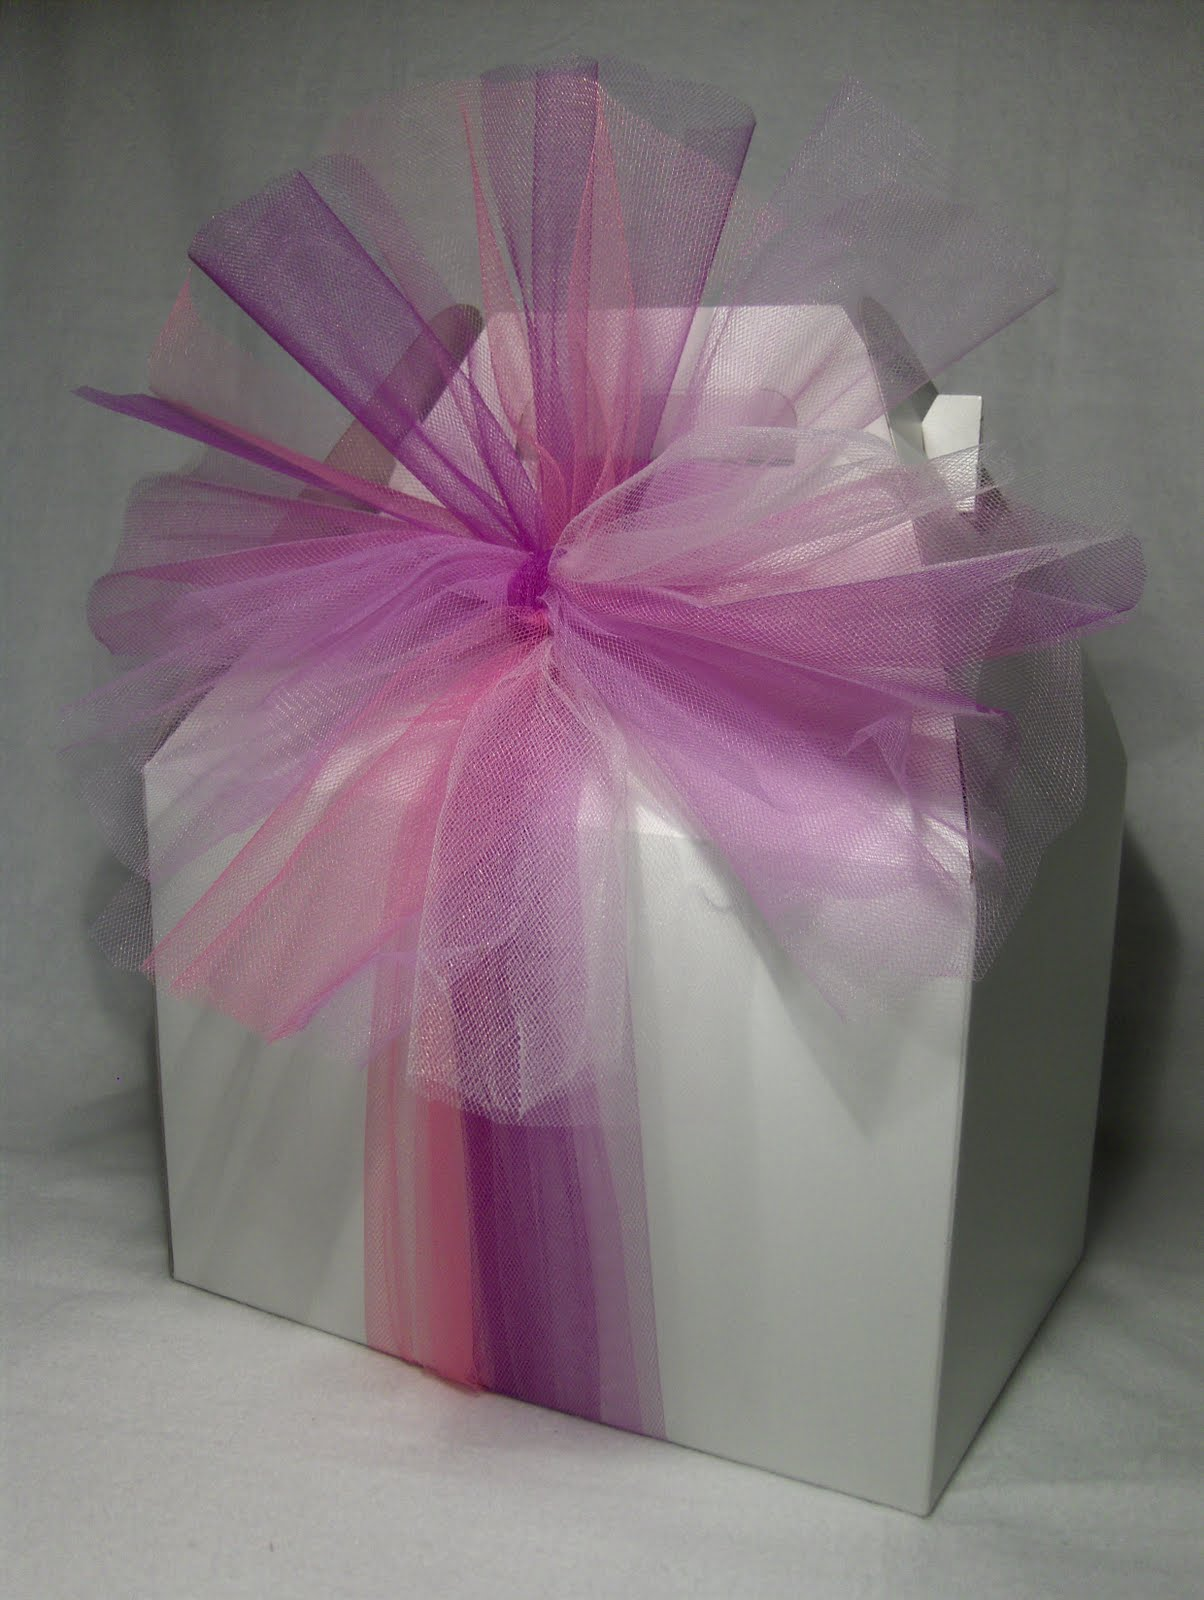 White box wrapped with pink tulle netting